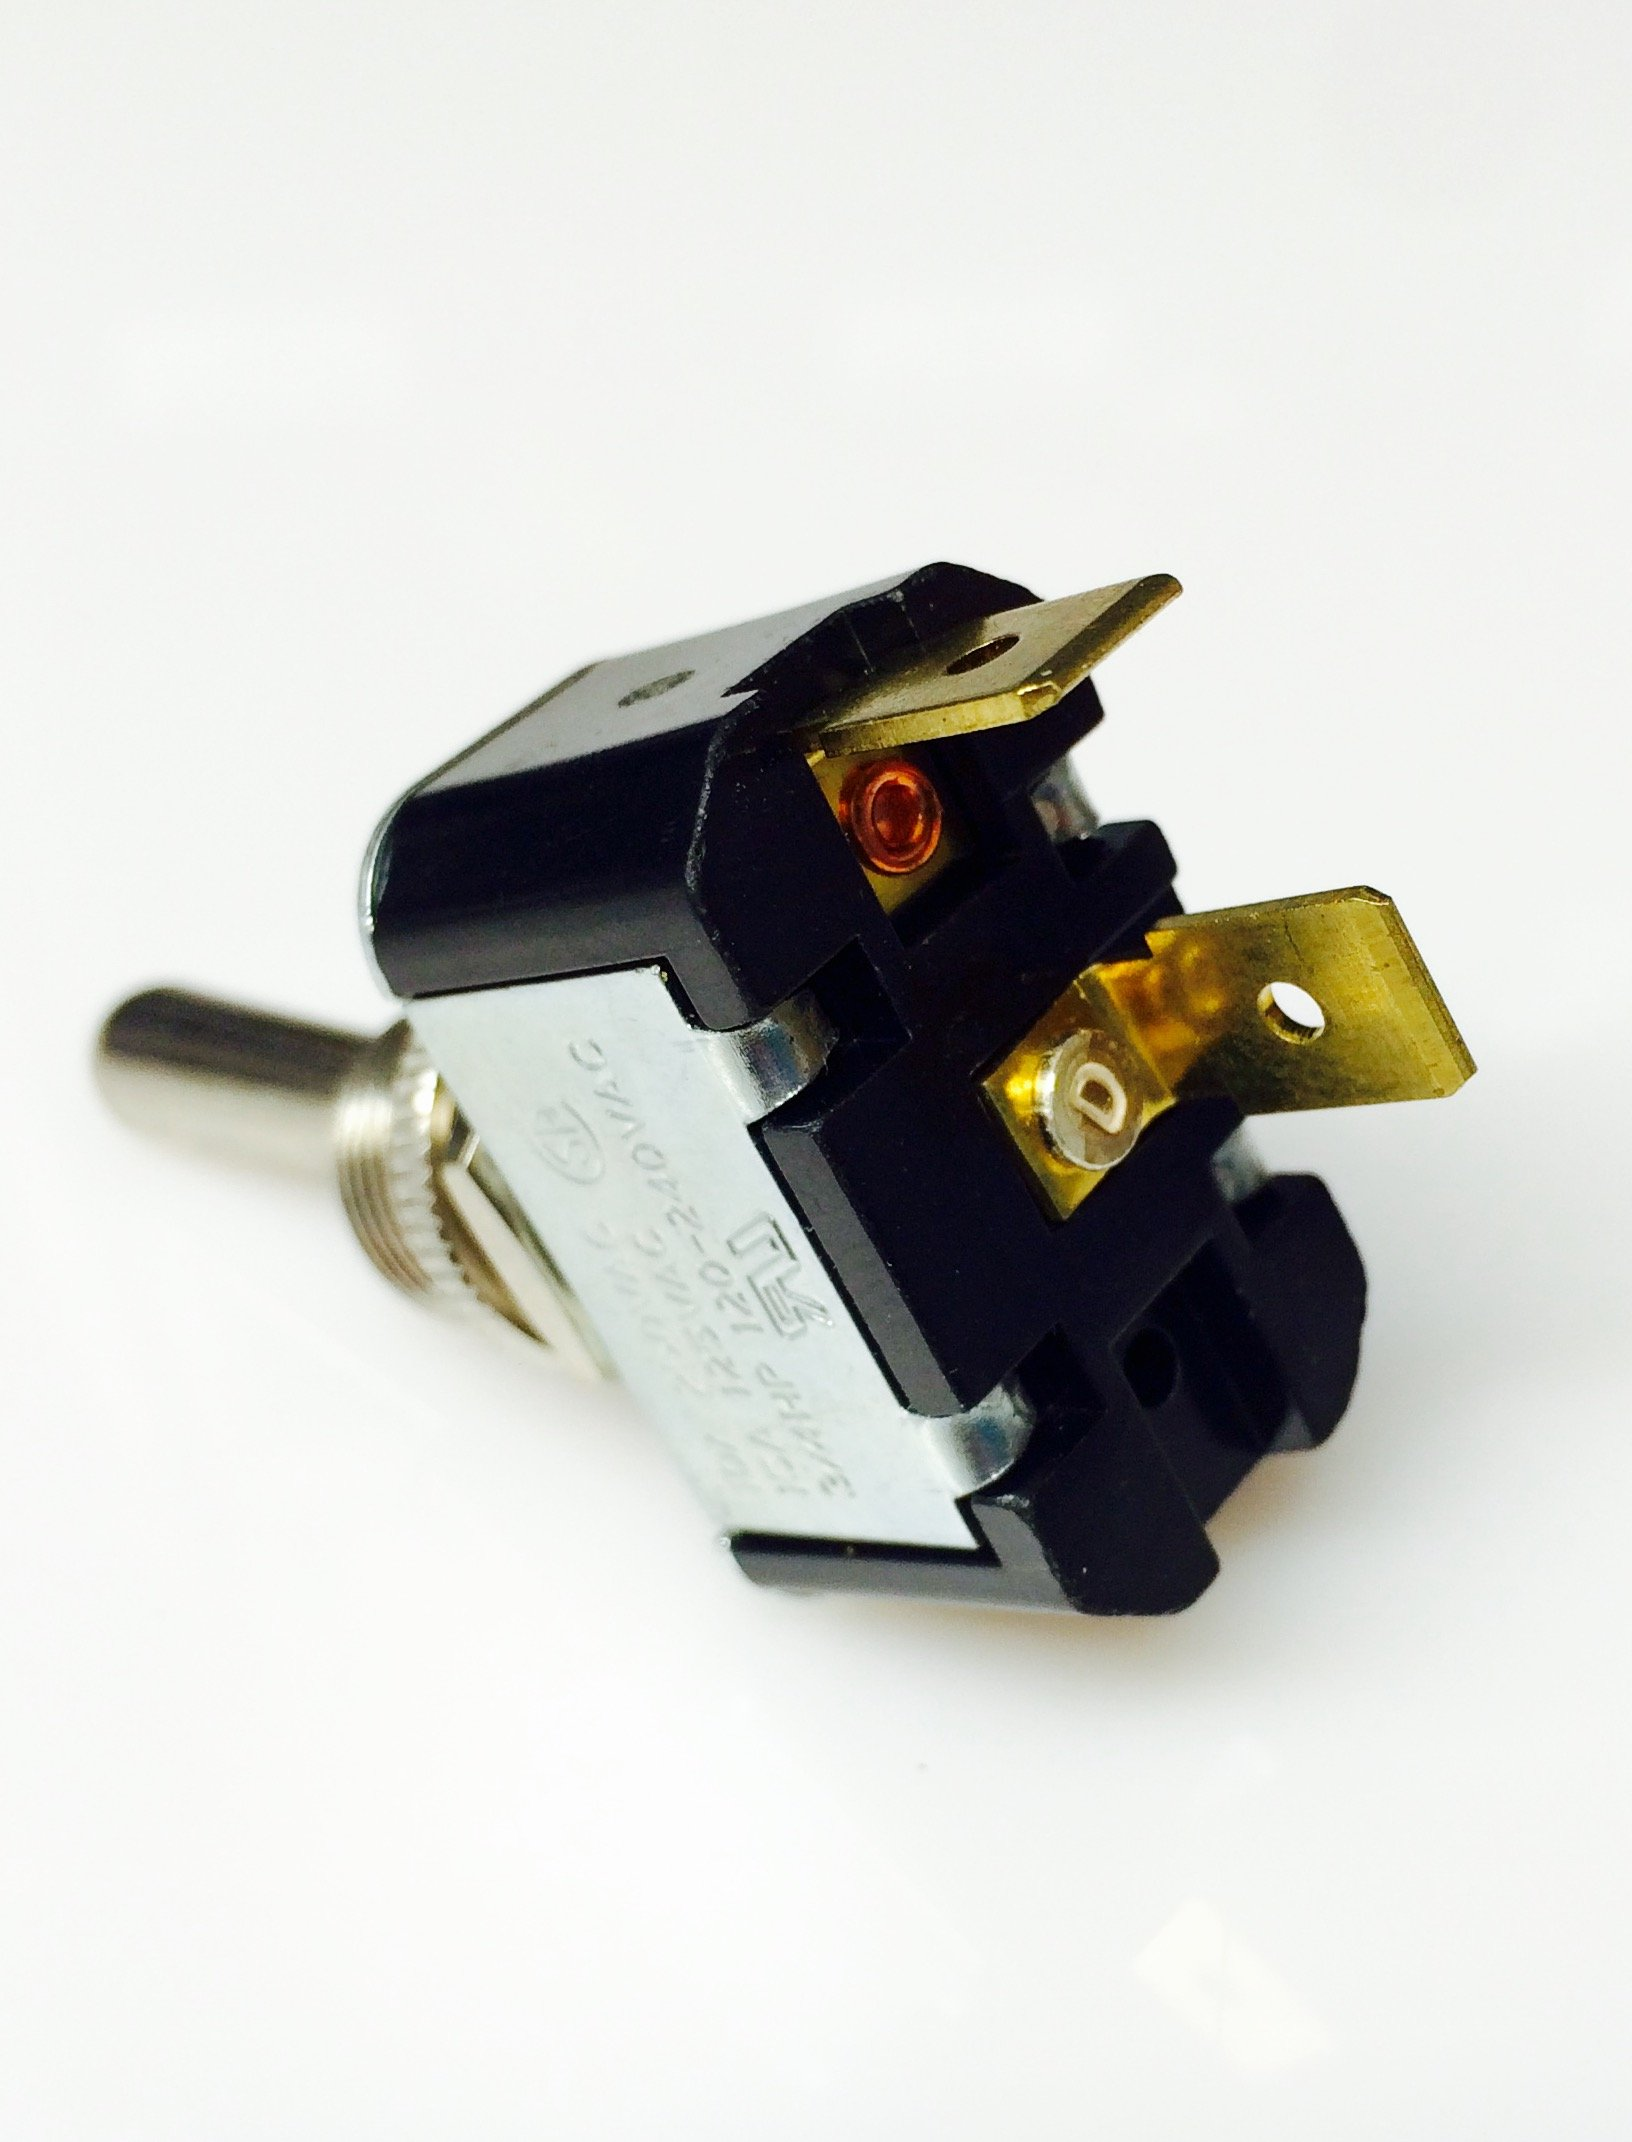 Toggle Switch Body (ON)/OFF, SPST, Momentary